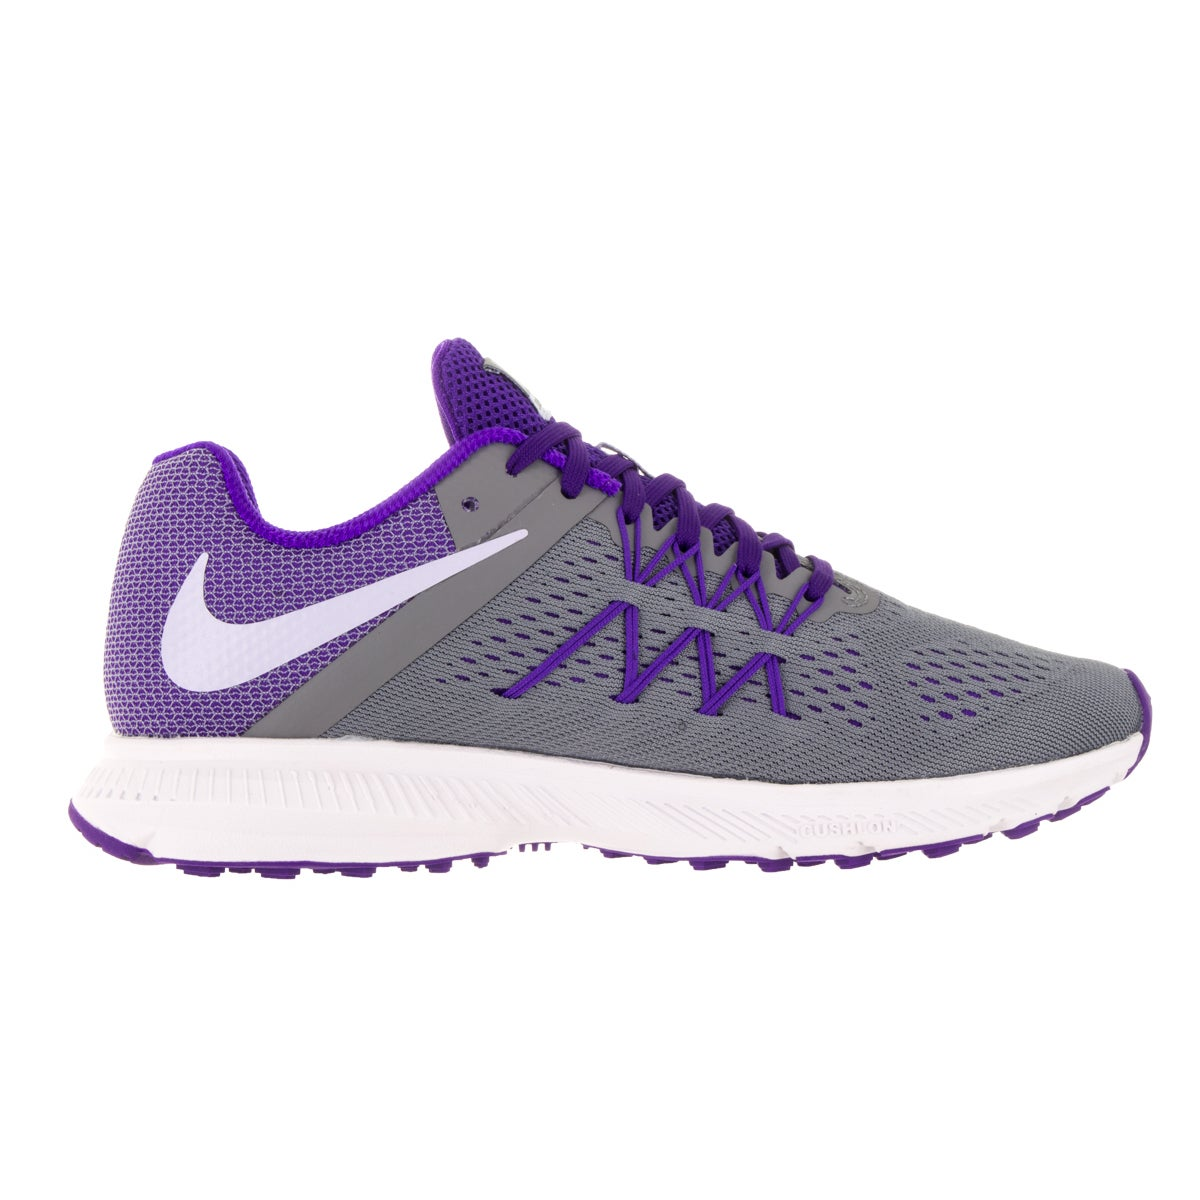 wholesale dealer e2ce0 d354d Shop Nike Women s Zoom Winflo 3 Grey, Purple, and White Plastic Running  Shoes - Free Shipping Today - Overstock - 13344105